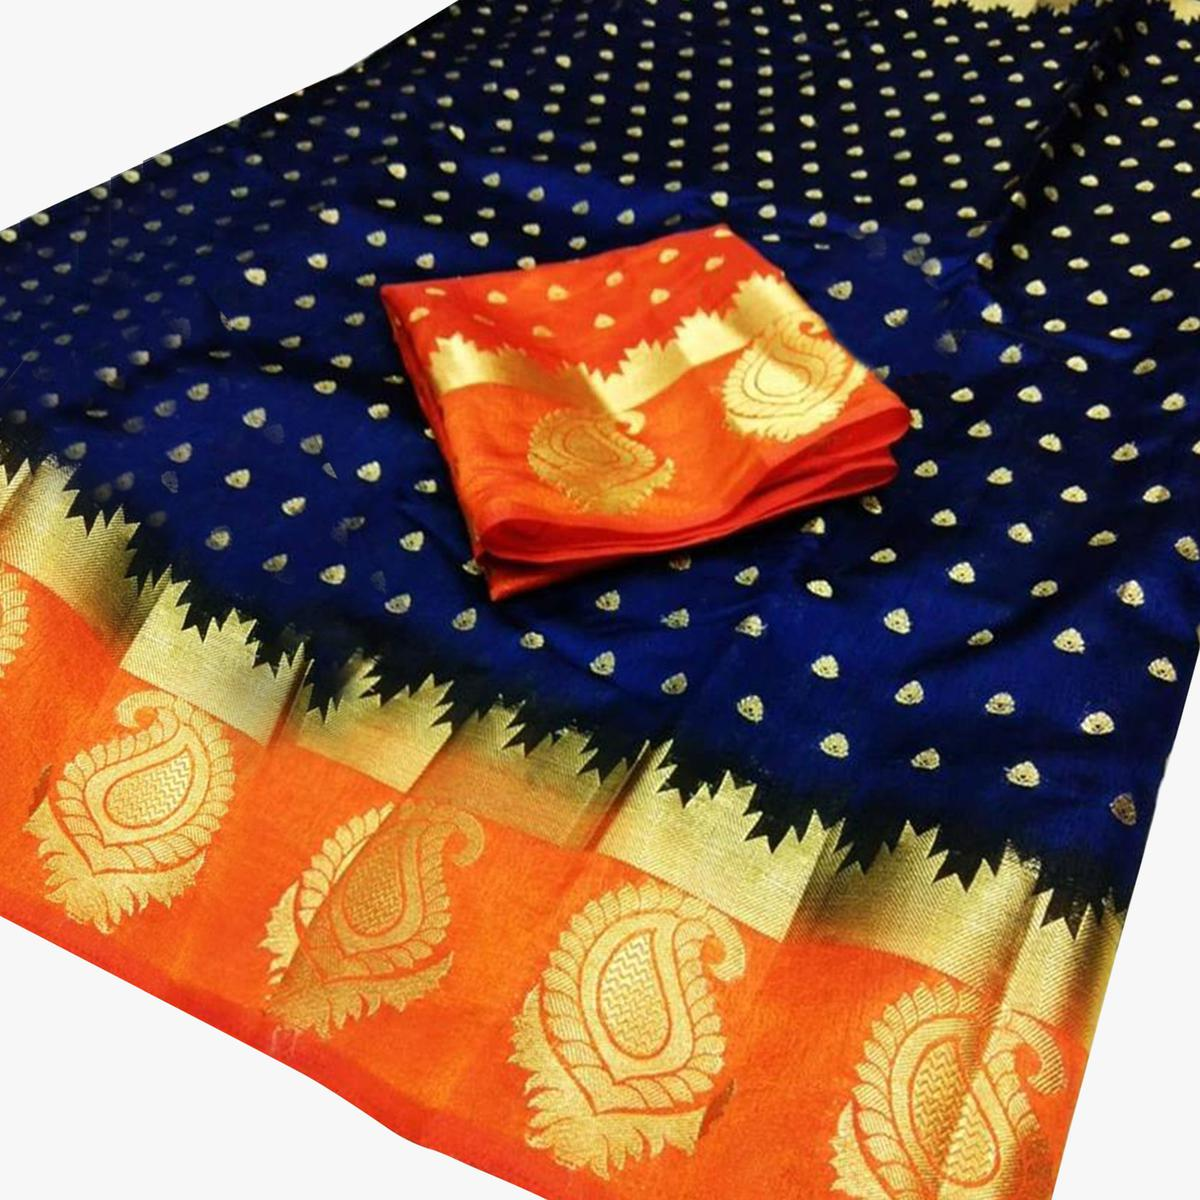 Stunning Navy Blue-Orange Colored Festive Wear Woven Cotton Silk Saree